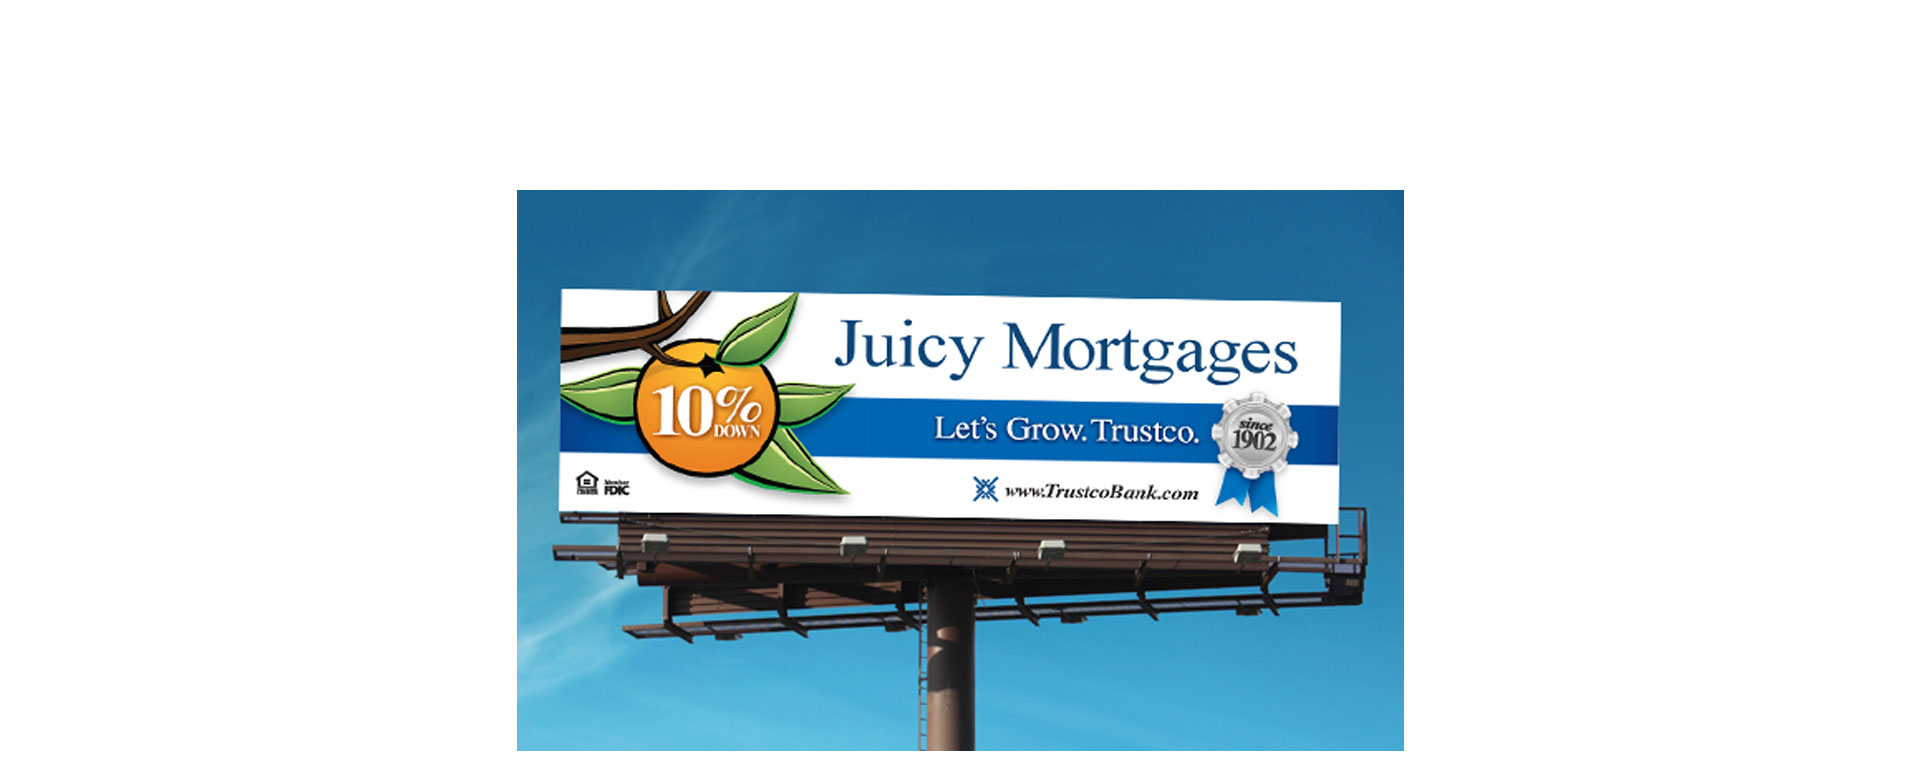 Juicy Mortgages Outdoor Campaign